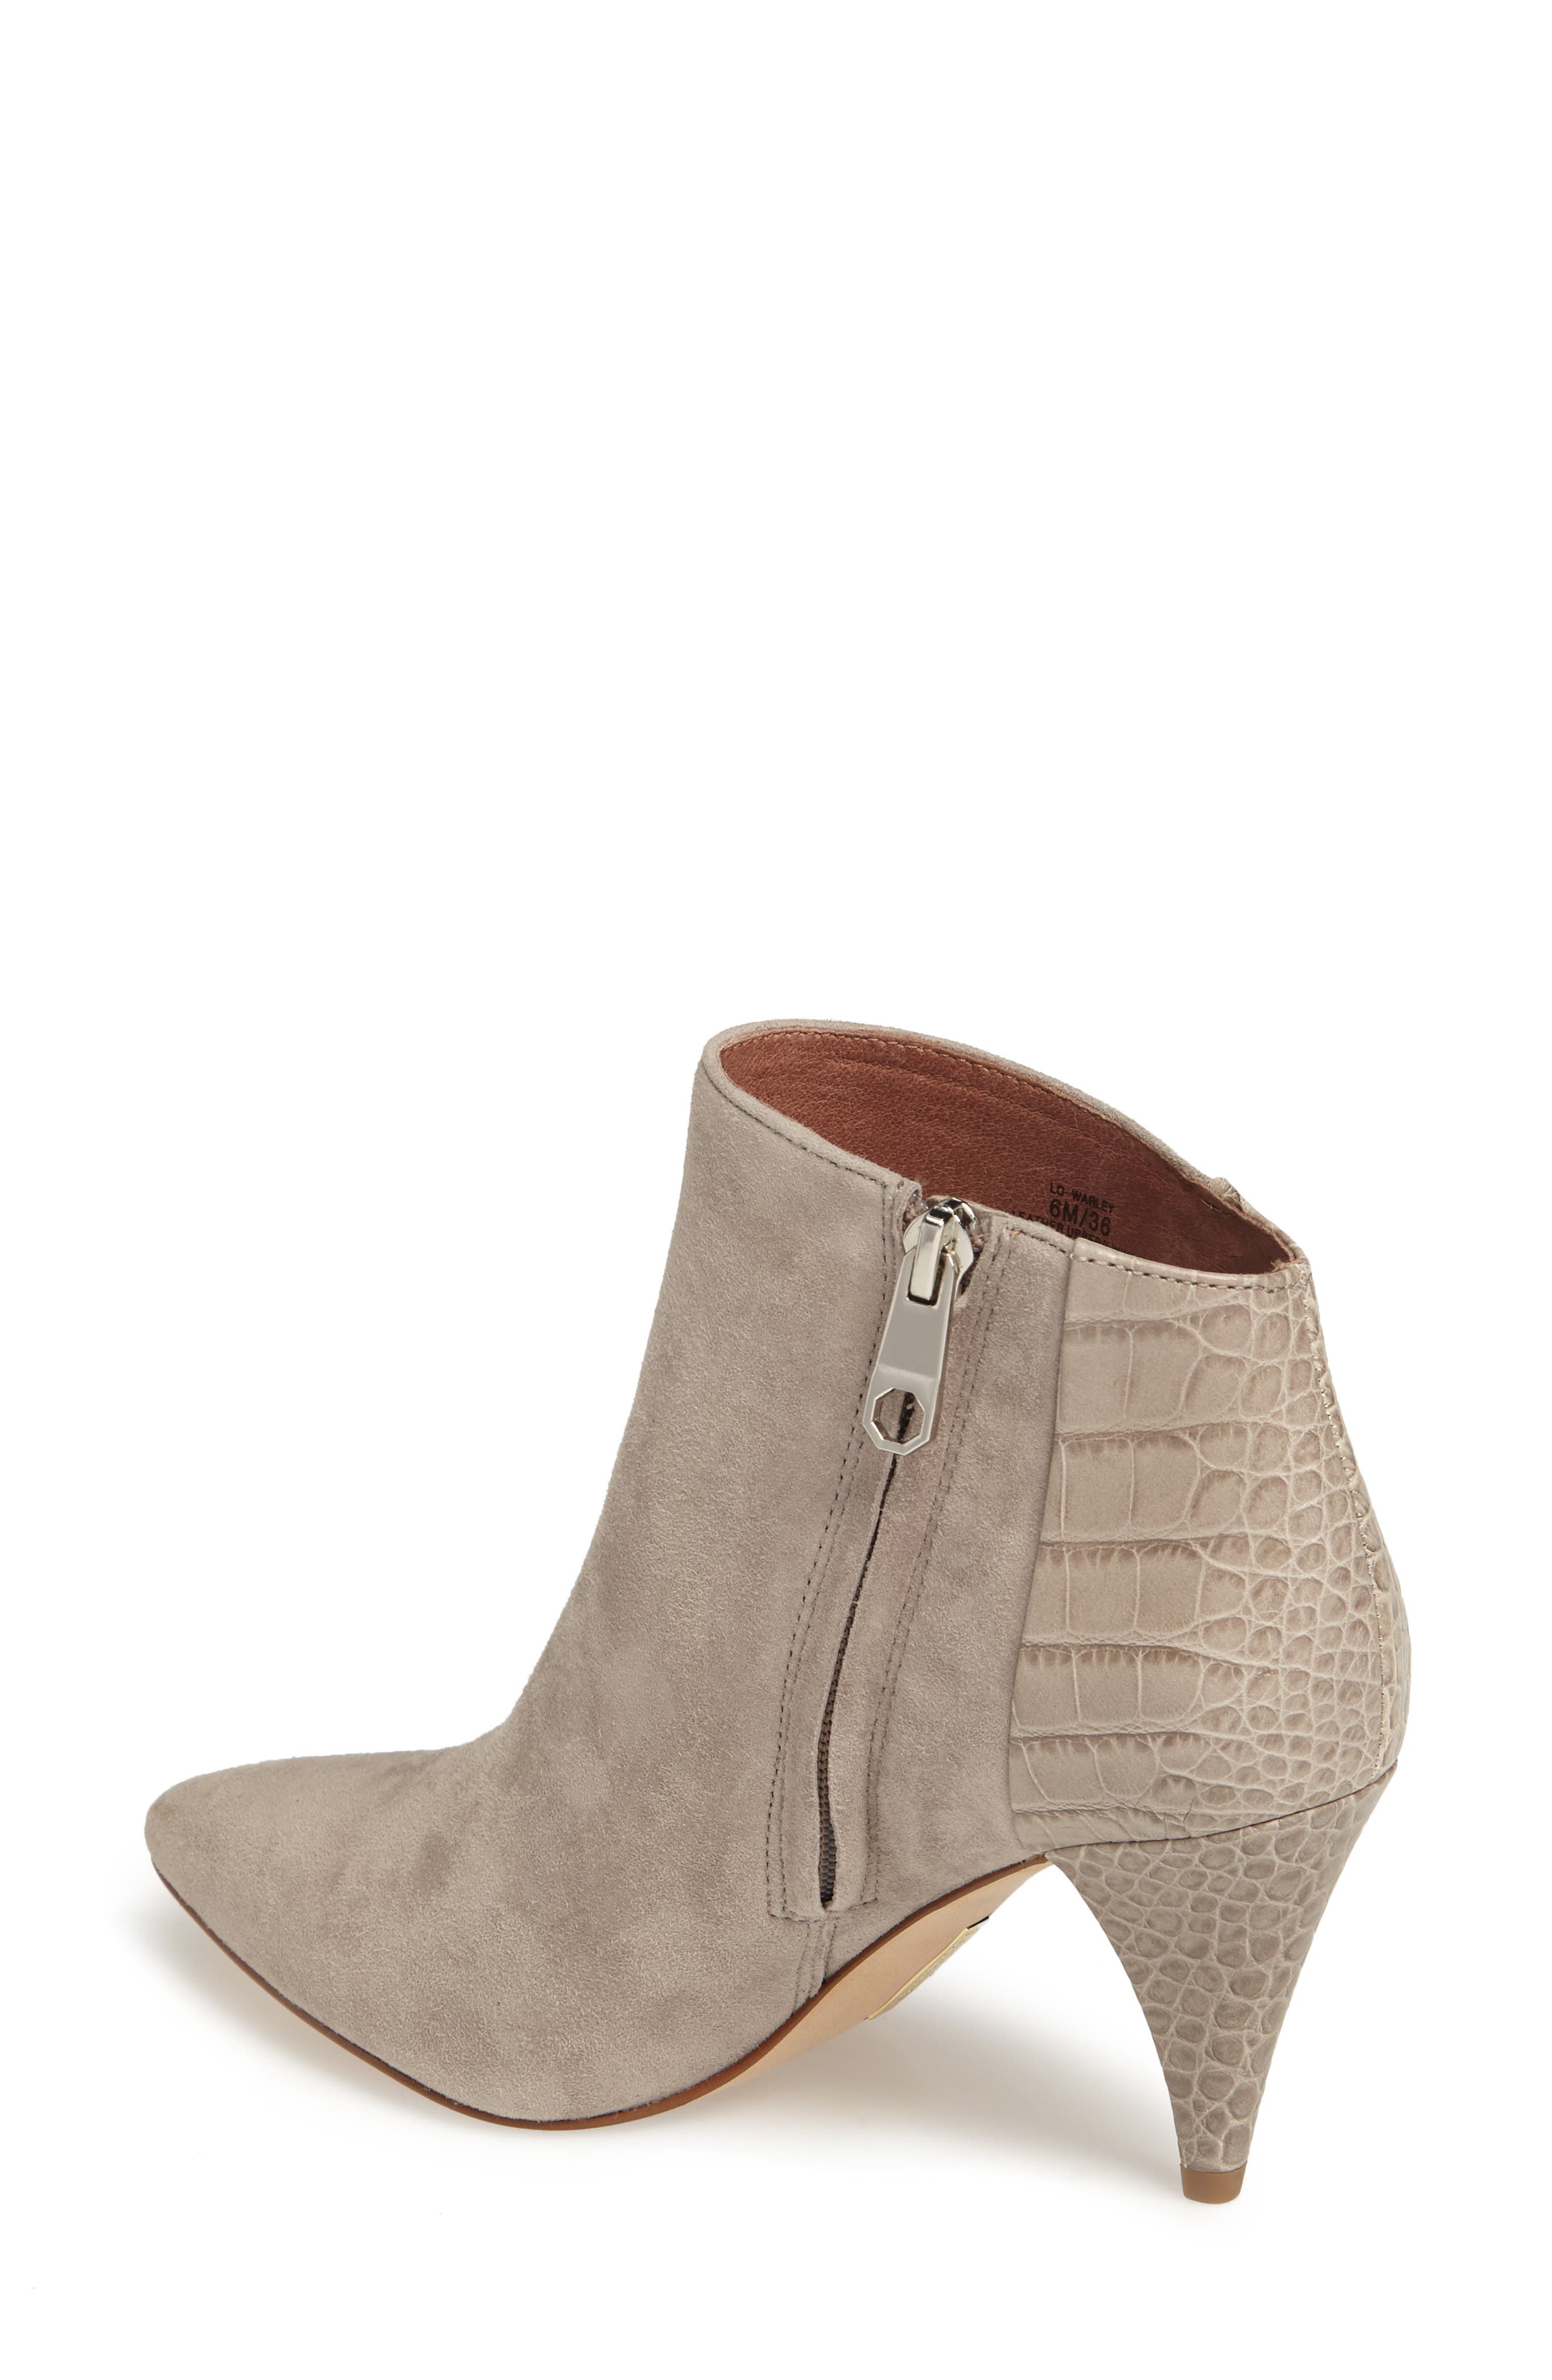 Warley Pointy Toe Bootie,                             Alternate thumbnail 5, color,